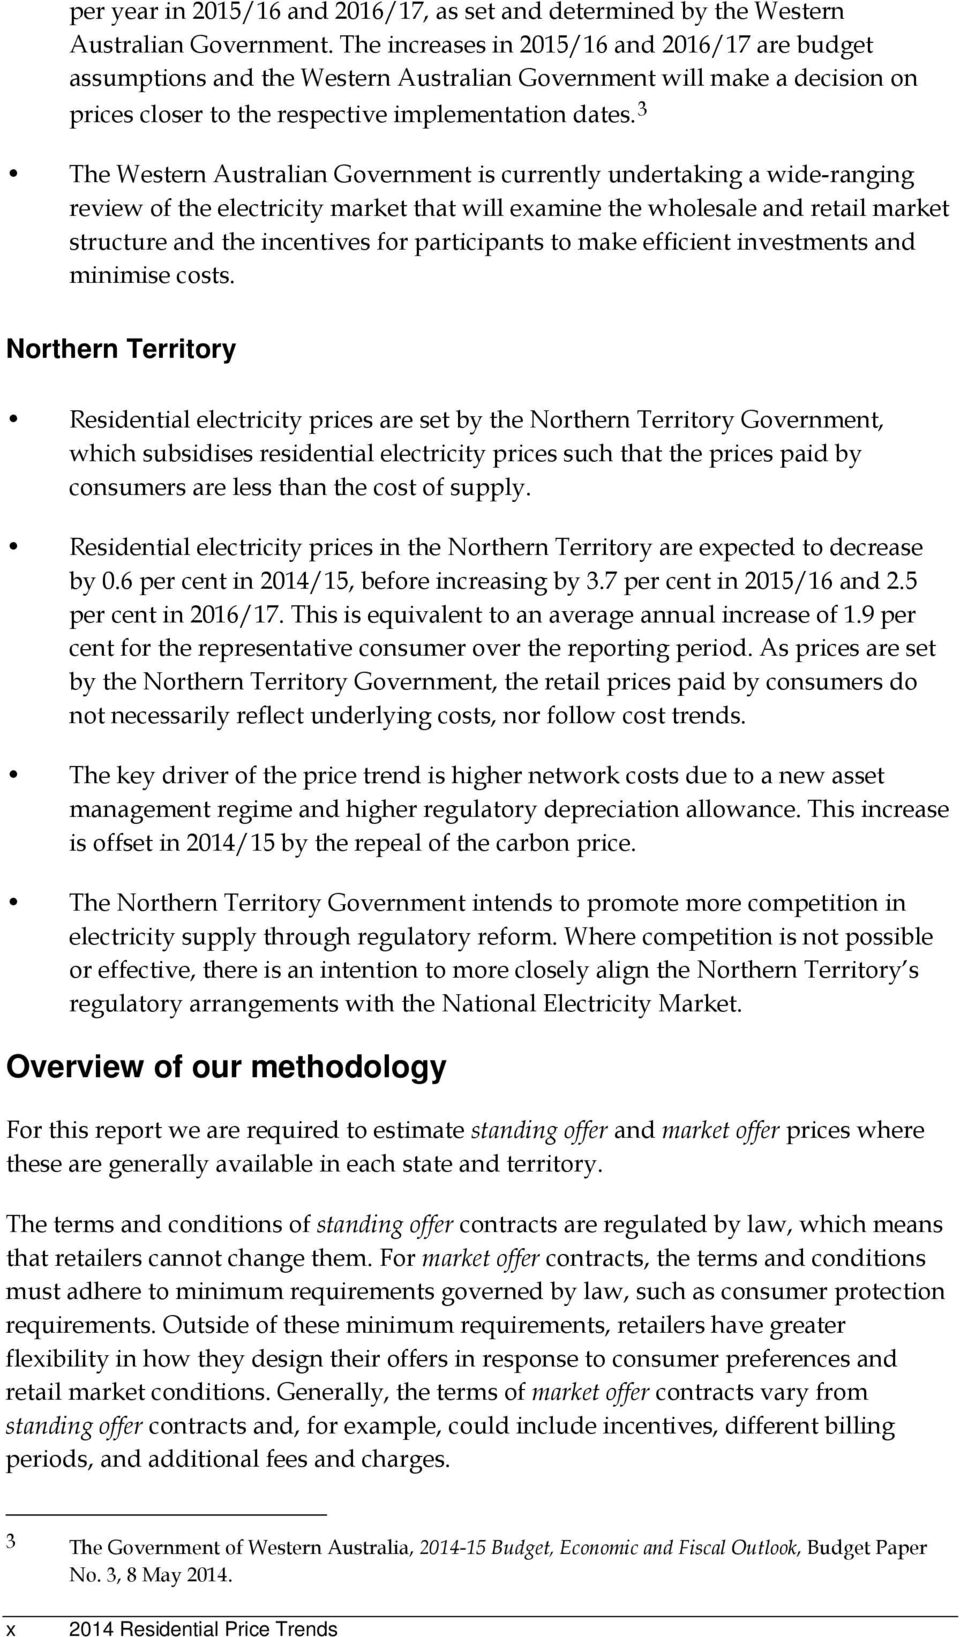 3 The Western Australian Government is currently undertaking a wide-ranging review of the electricity market that will examine the wholesale and retail market structure and the incentives for